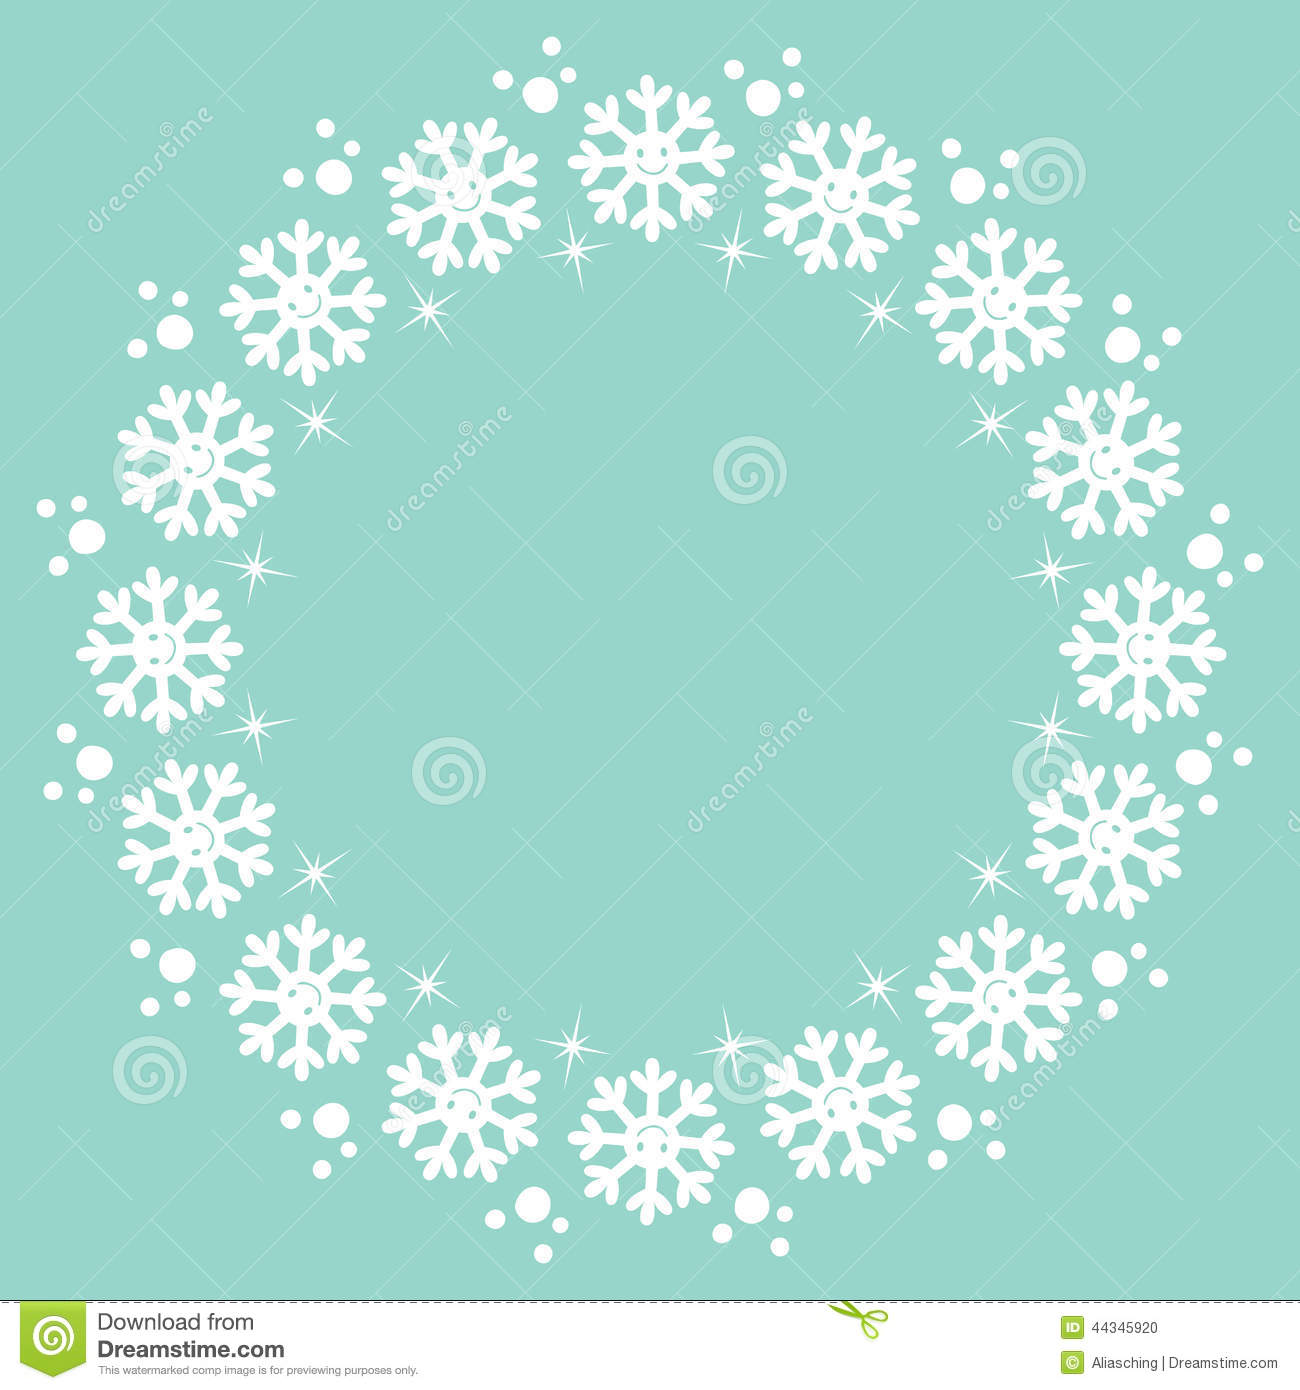 Snowflakes Christmas Winter Round Frame Design Element